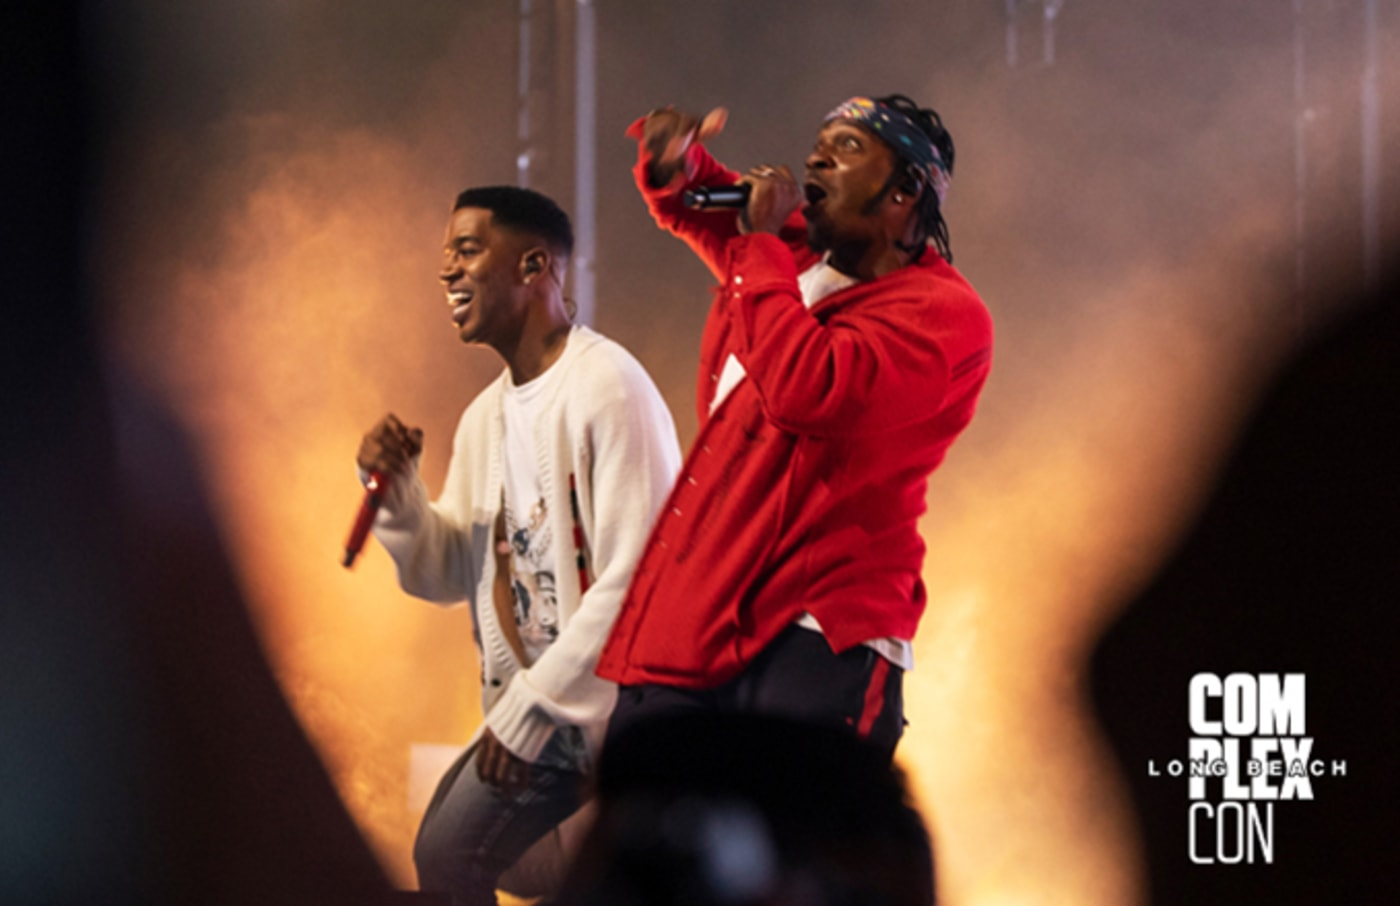 Kid Cudi and Pusha T at ComplexCon Long Beach 2019